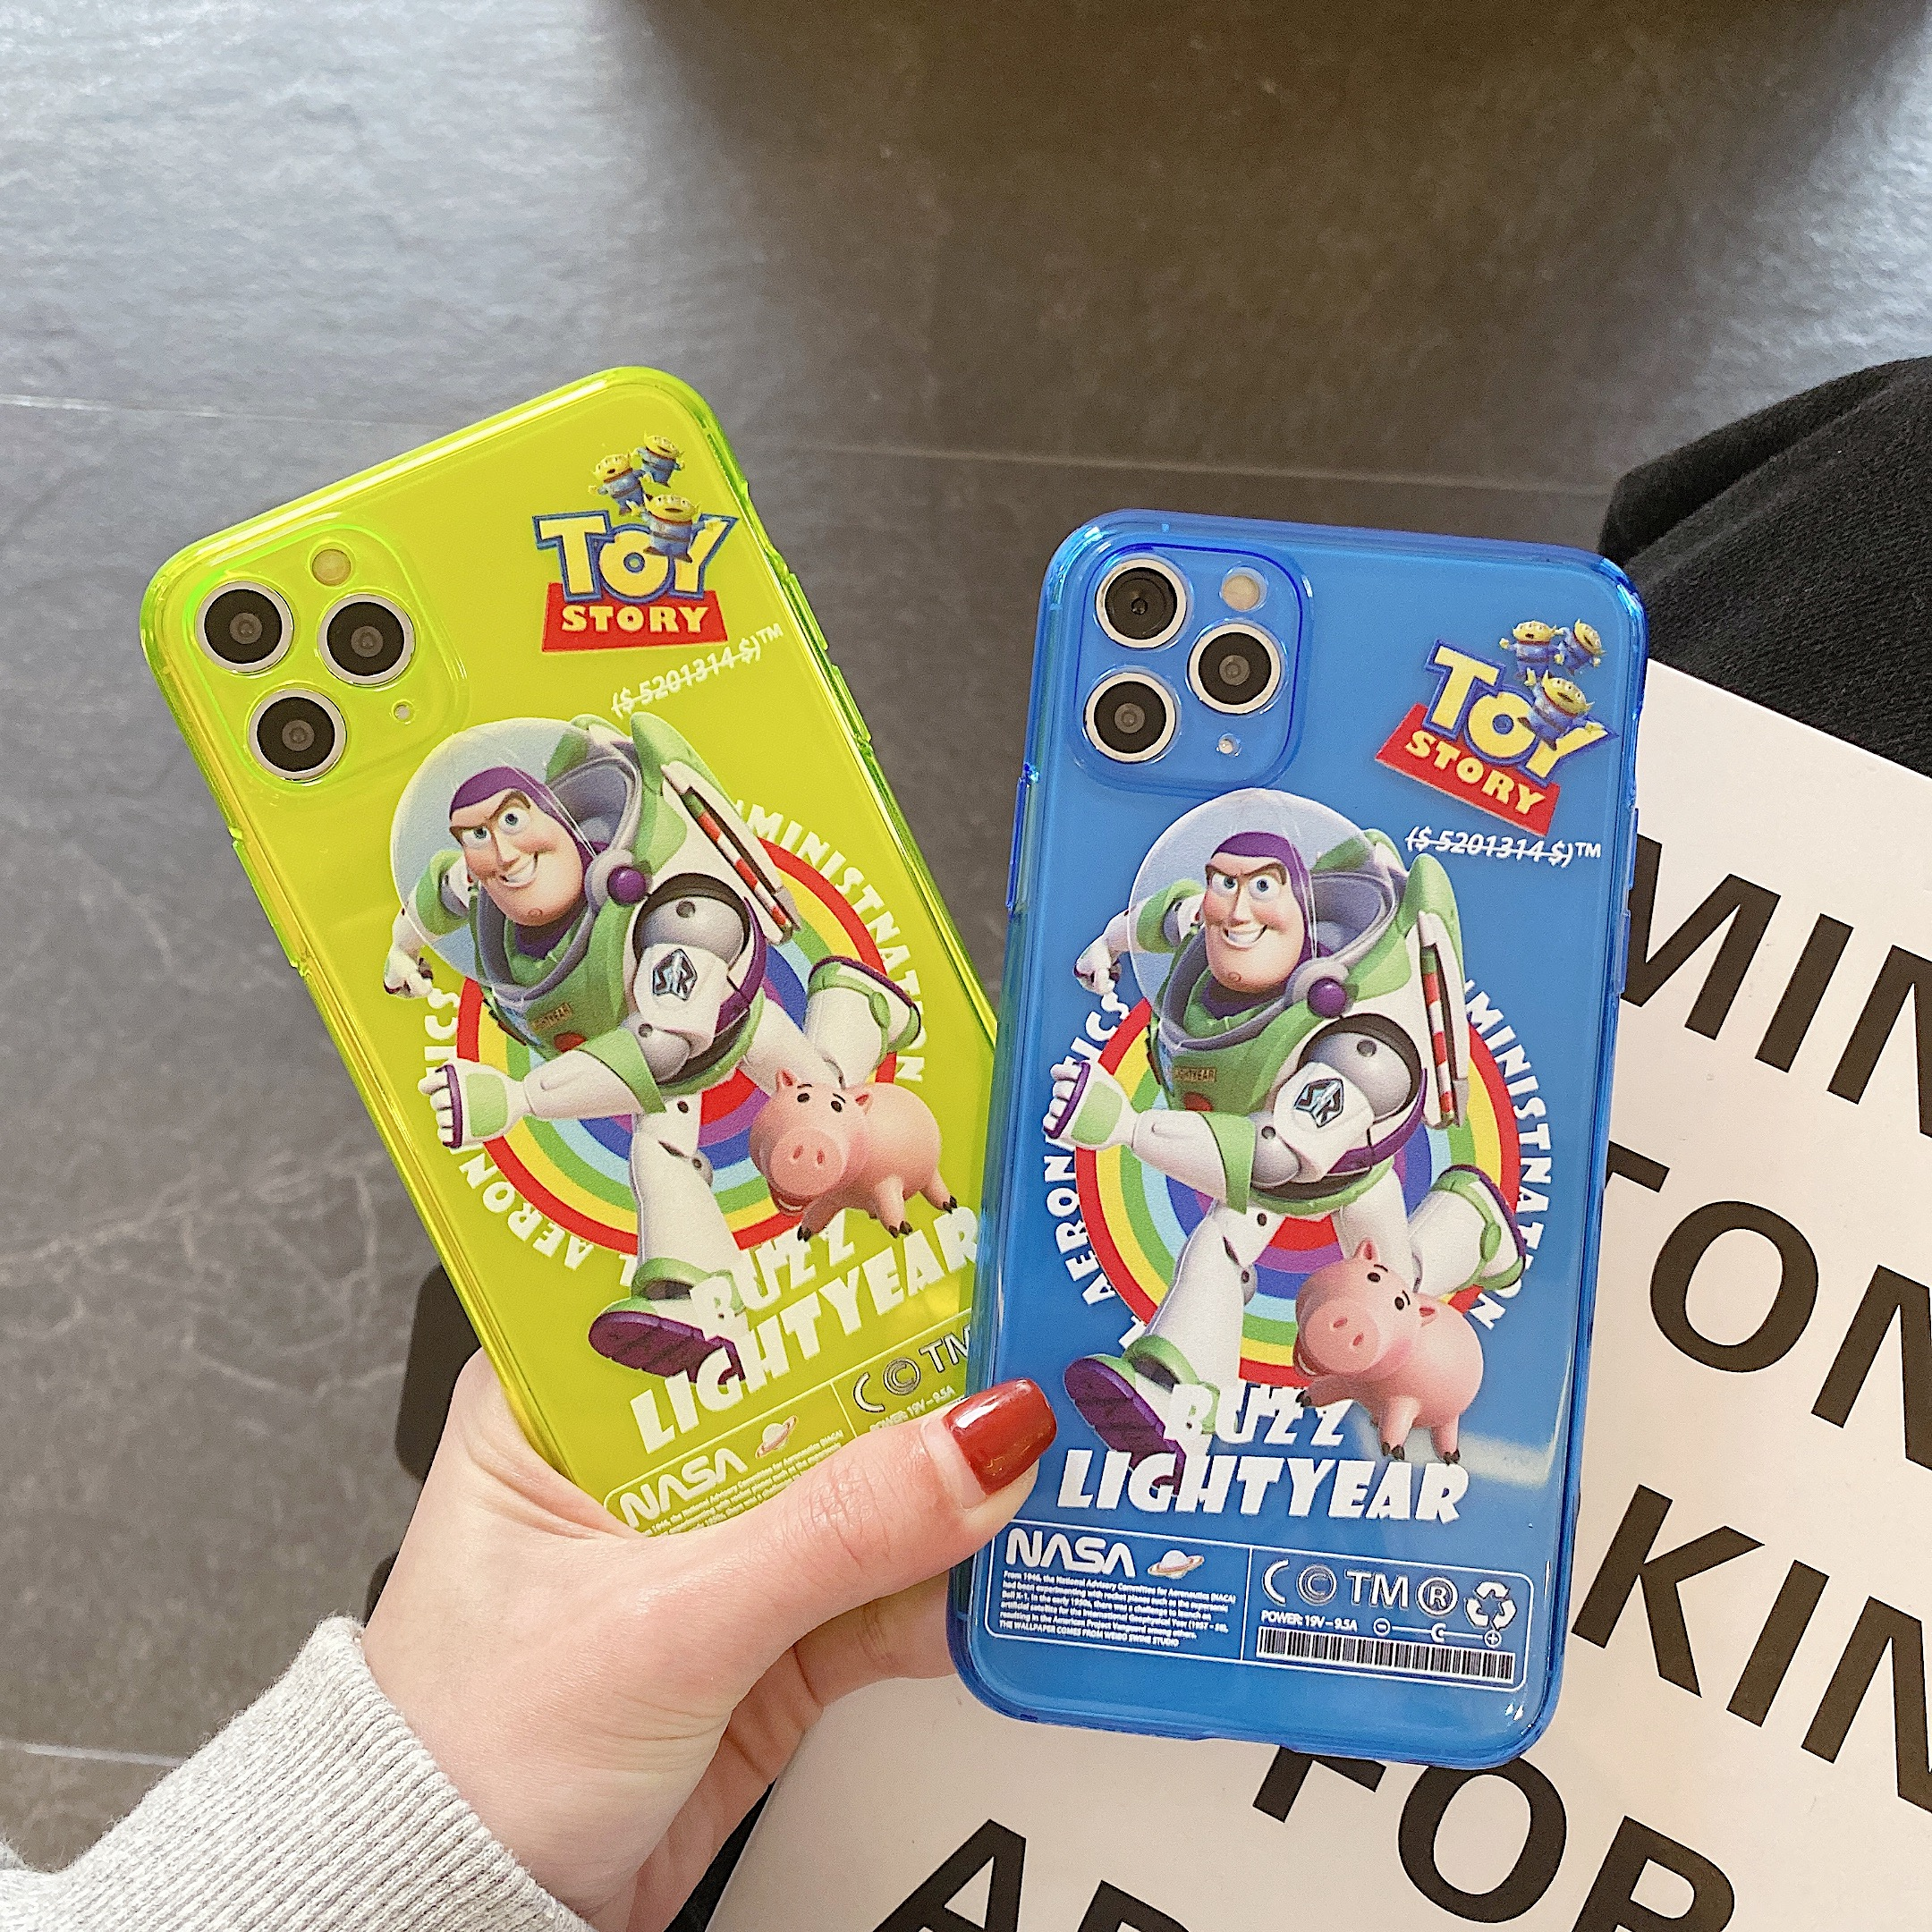 <font><b>Toy</b></font> <font><b>story</b></font> Buzz Lightyear phone case fluorescent for <font><b>iphone</b></font> 11 Pro Max 7 8 Plus case cartoon for <font><b>iphone</b></font> XR <font><b>XS</b></font> MAX 11 cover <font><b>fundas</b></font> image